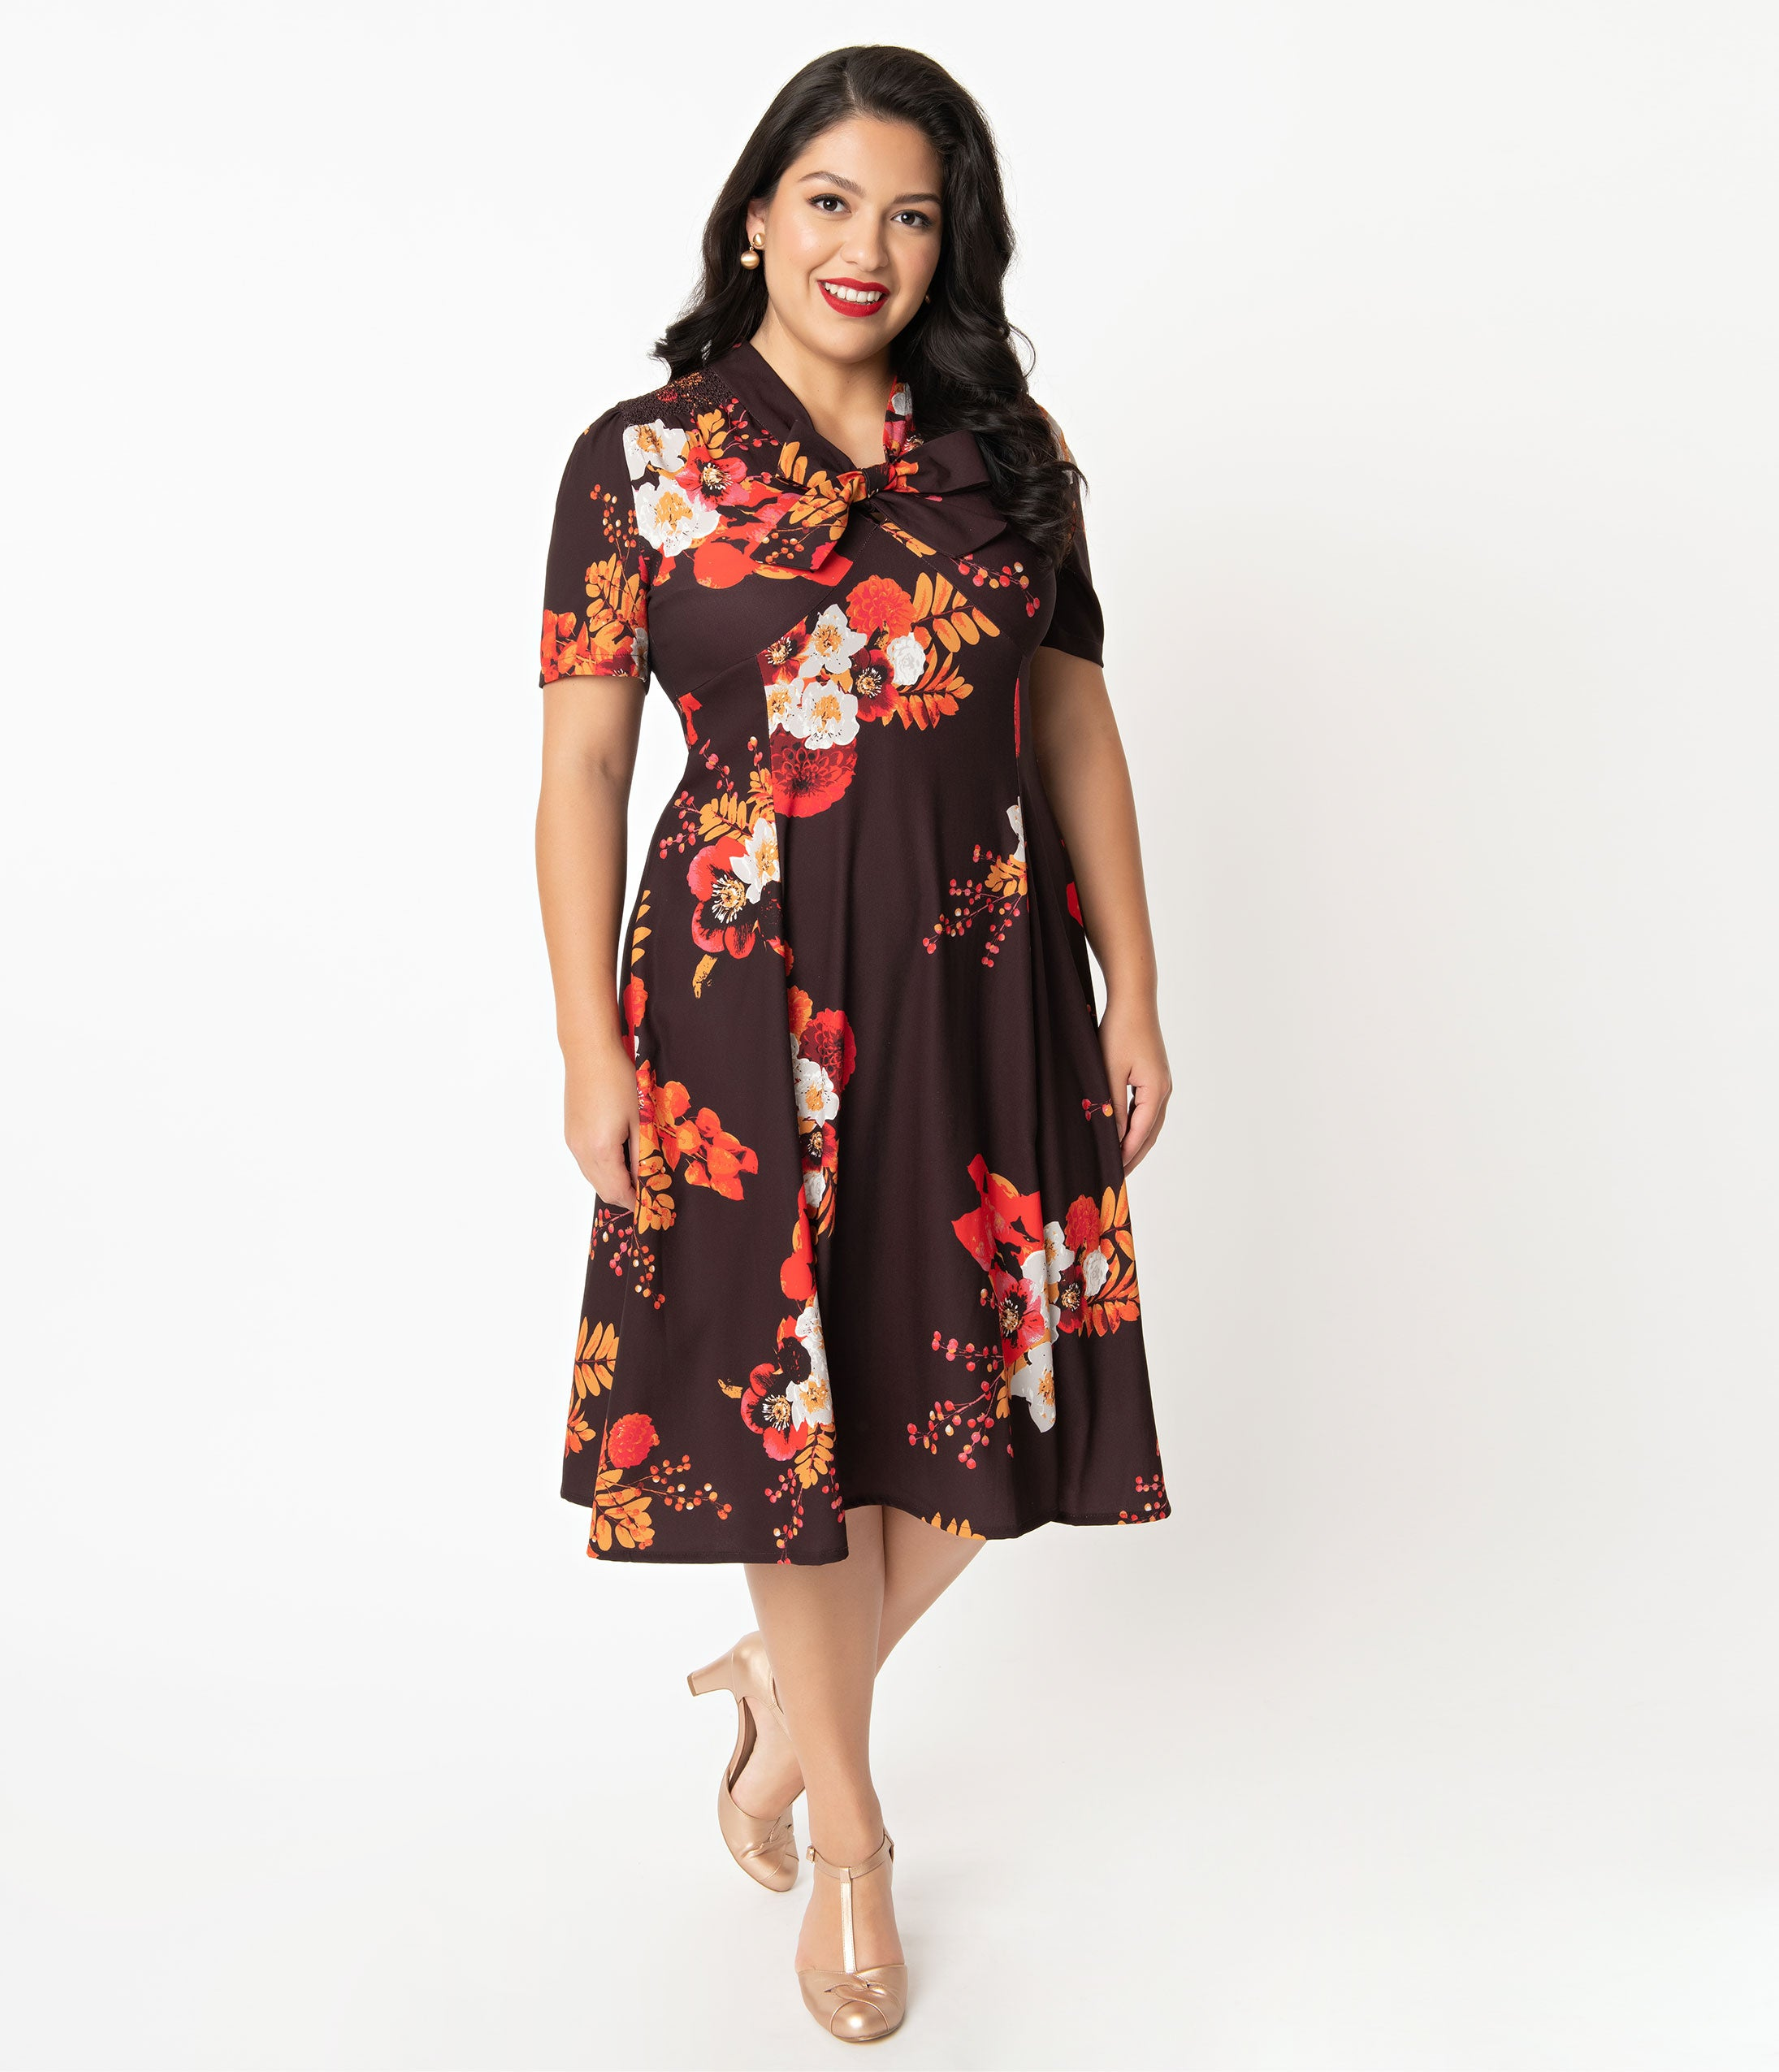 1940s Plus Size Dresses | Swing Dress, Tea Dress Plus Size 1940S Style Brown Autumn Floral Izzy Swing Dress $78.00 AT vintagedancer.com